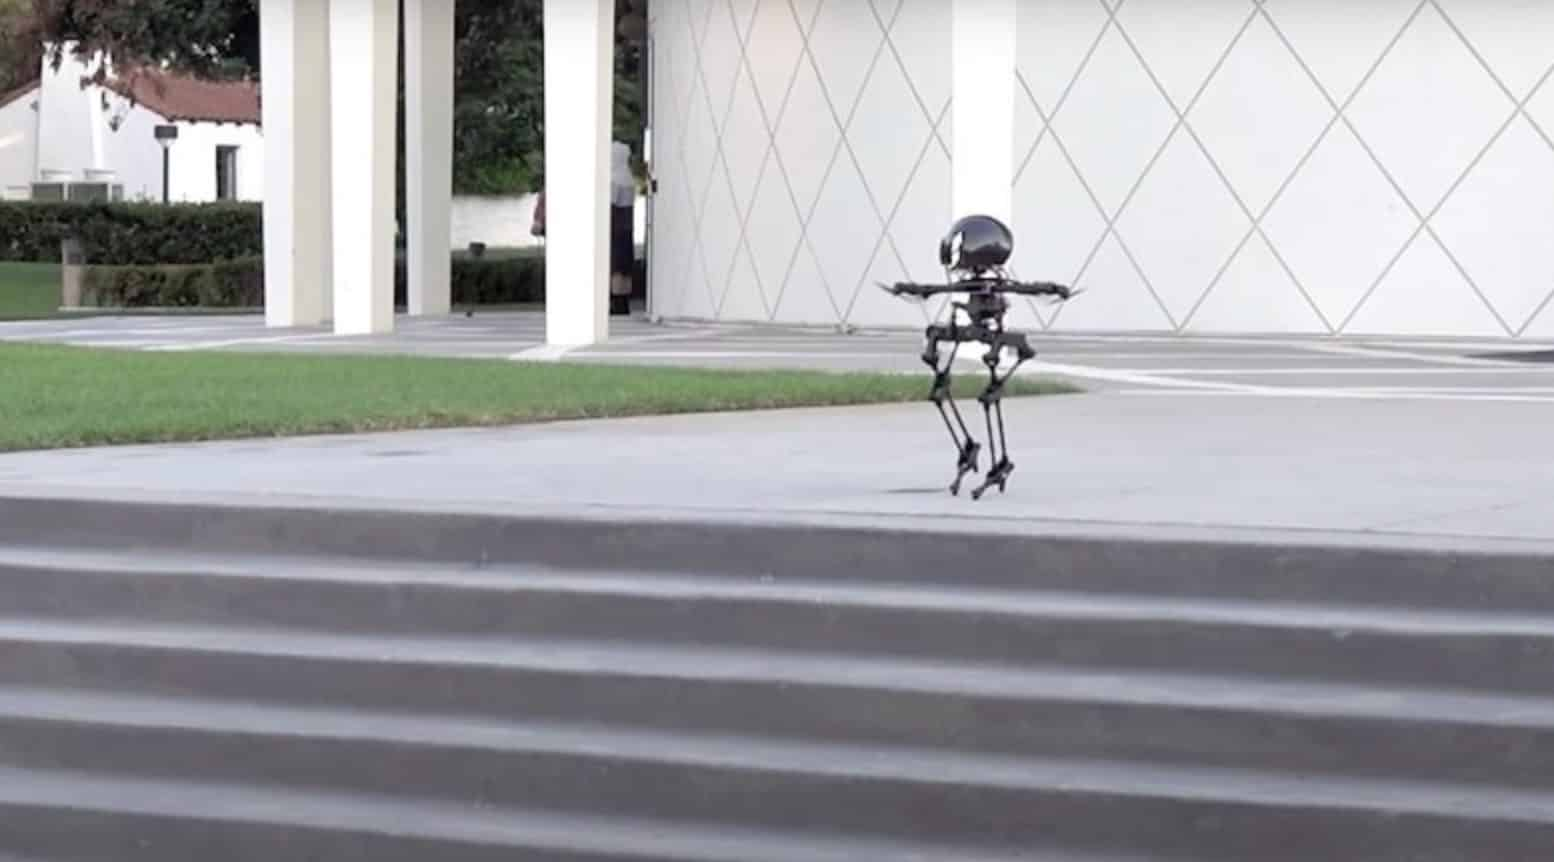 Robotdrone LEO can walk and skateboard in addition to flying